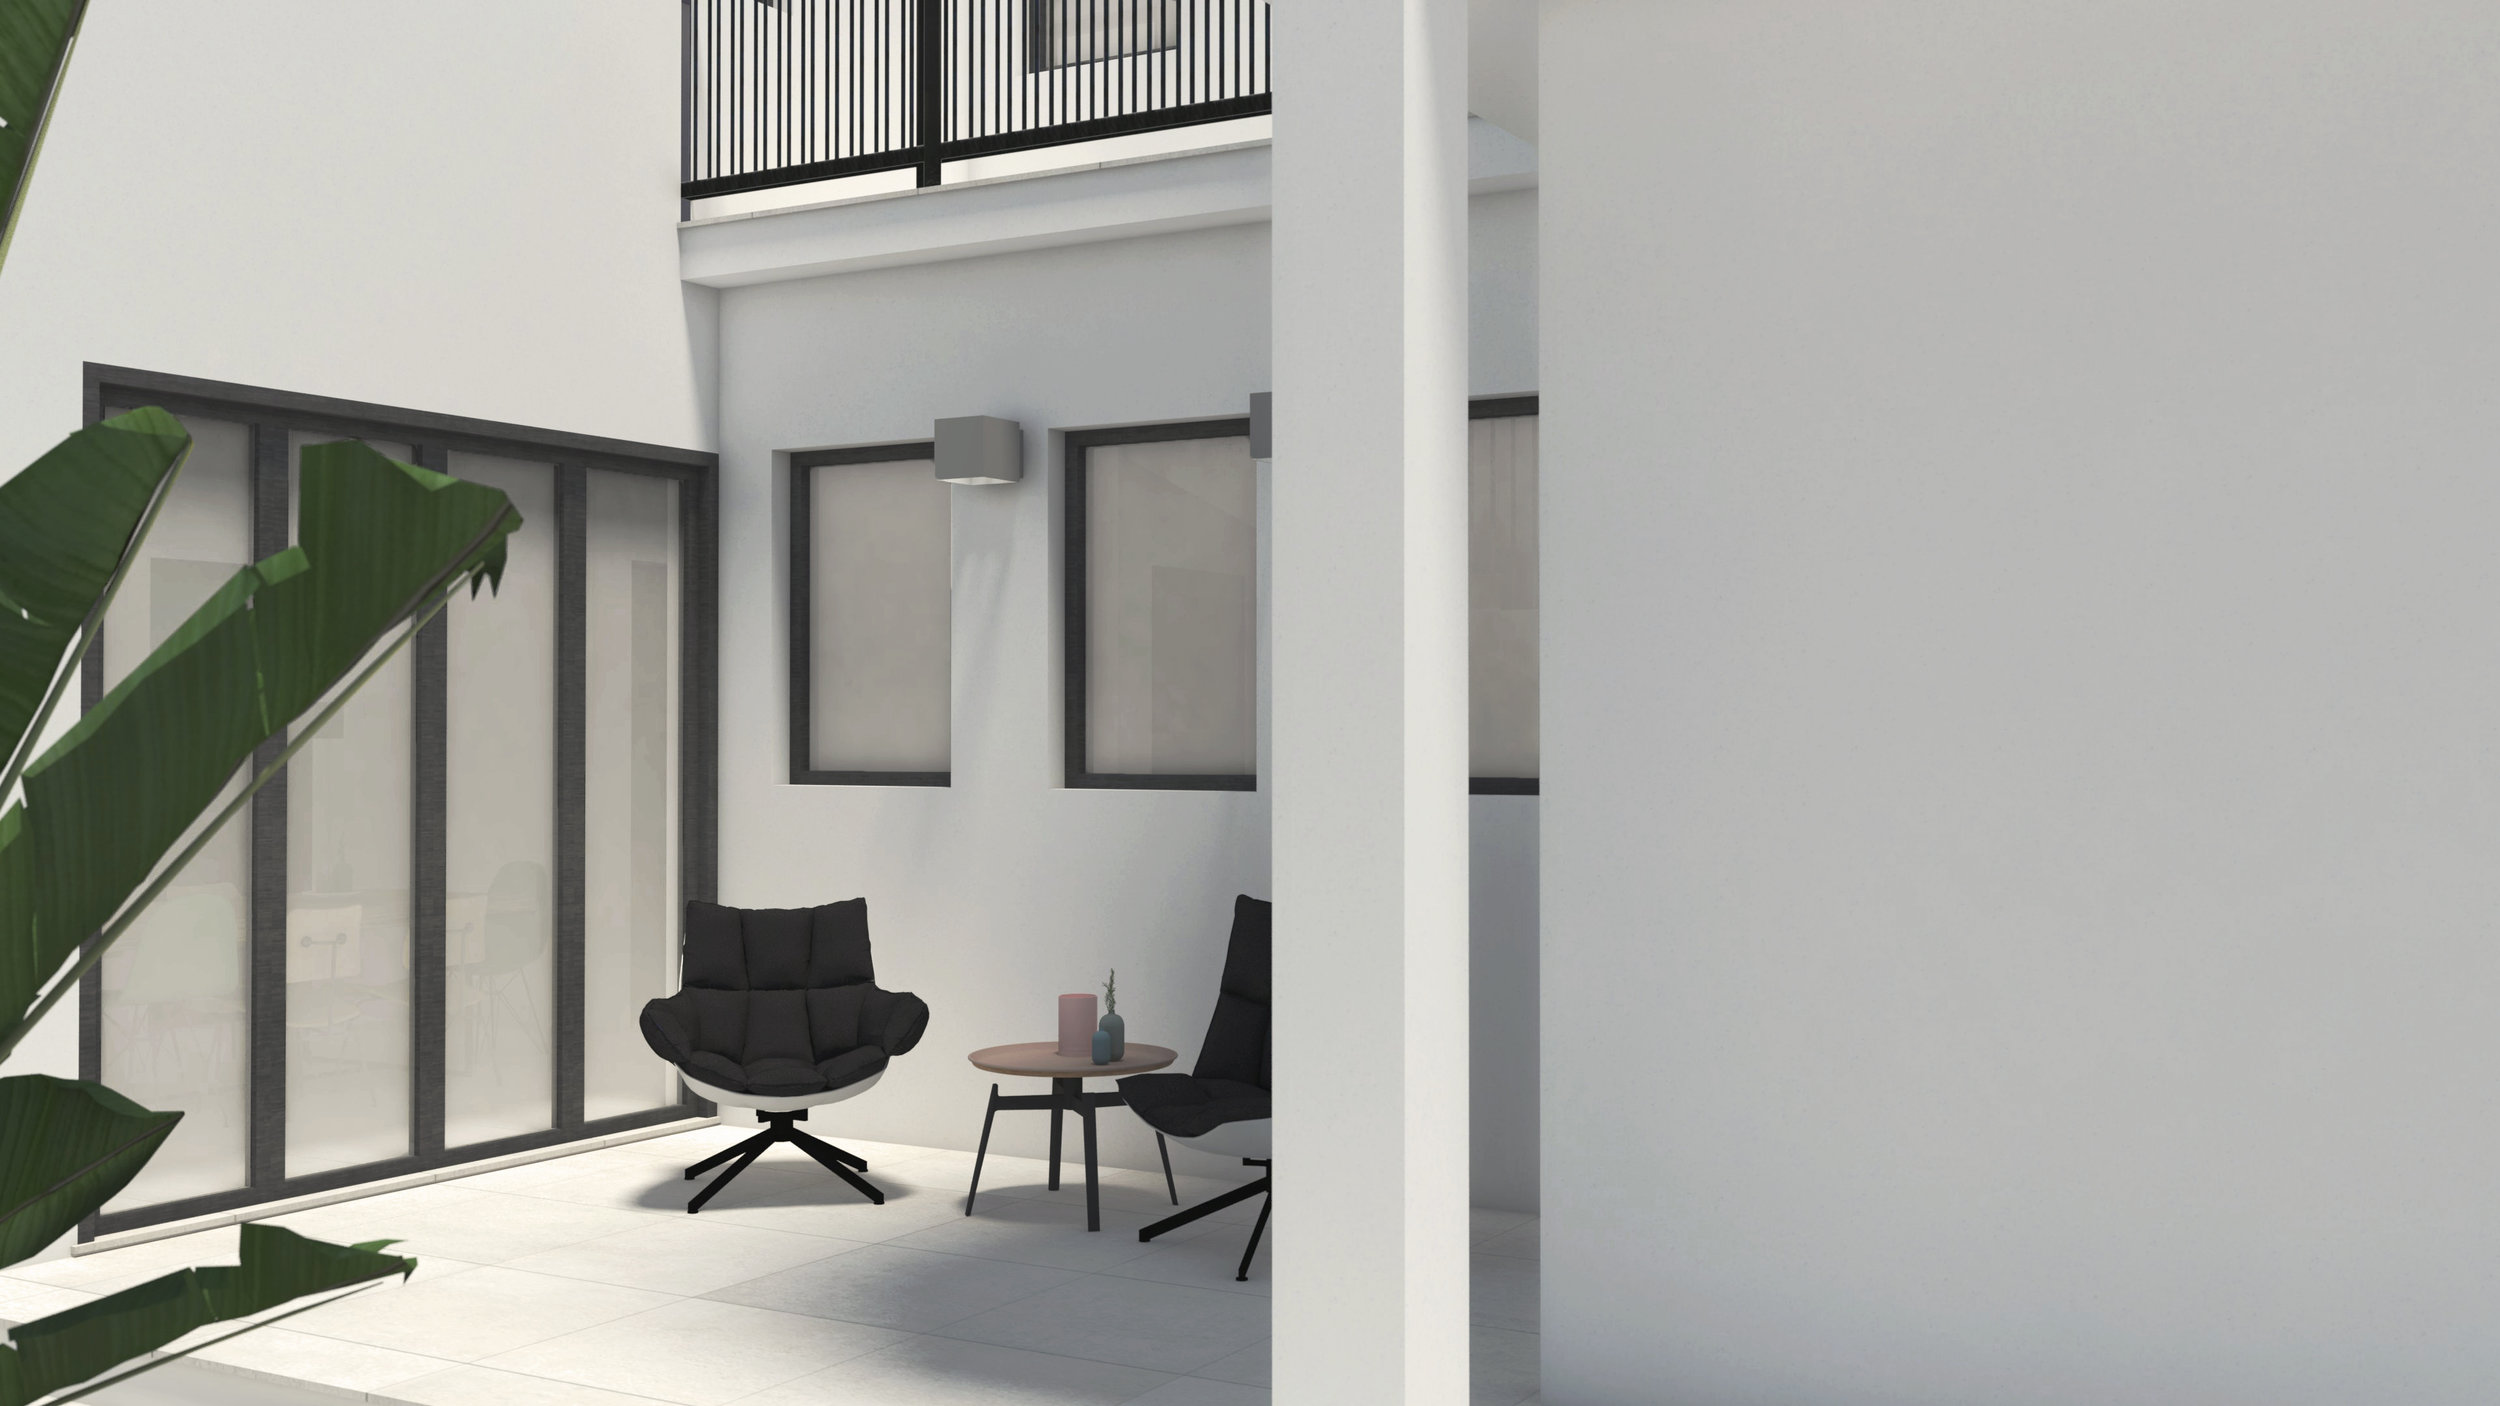 MINIMAL HOUSE - PRIVATE COURTYARD EXTERIOR LIVING SPACE